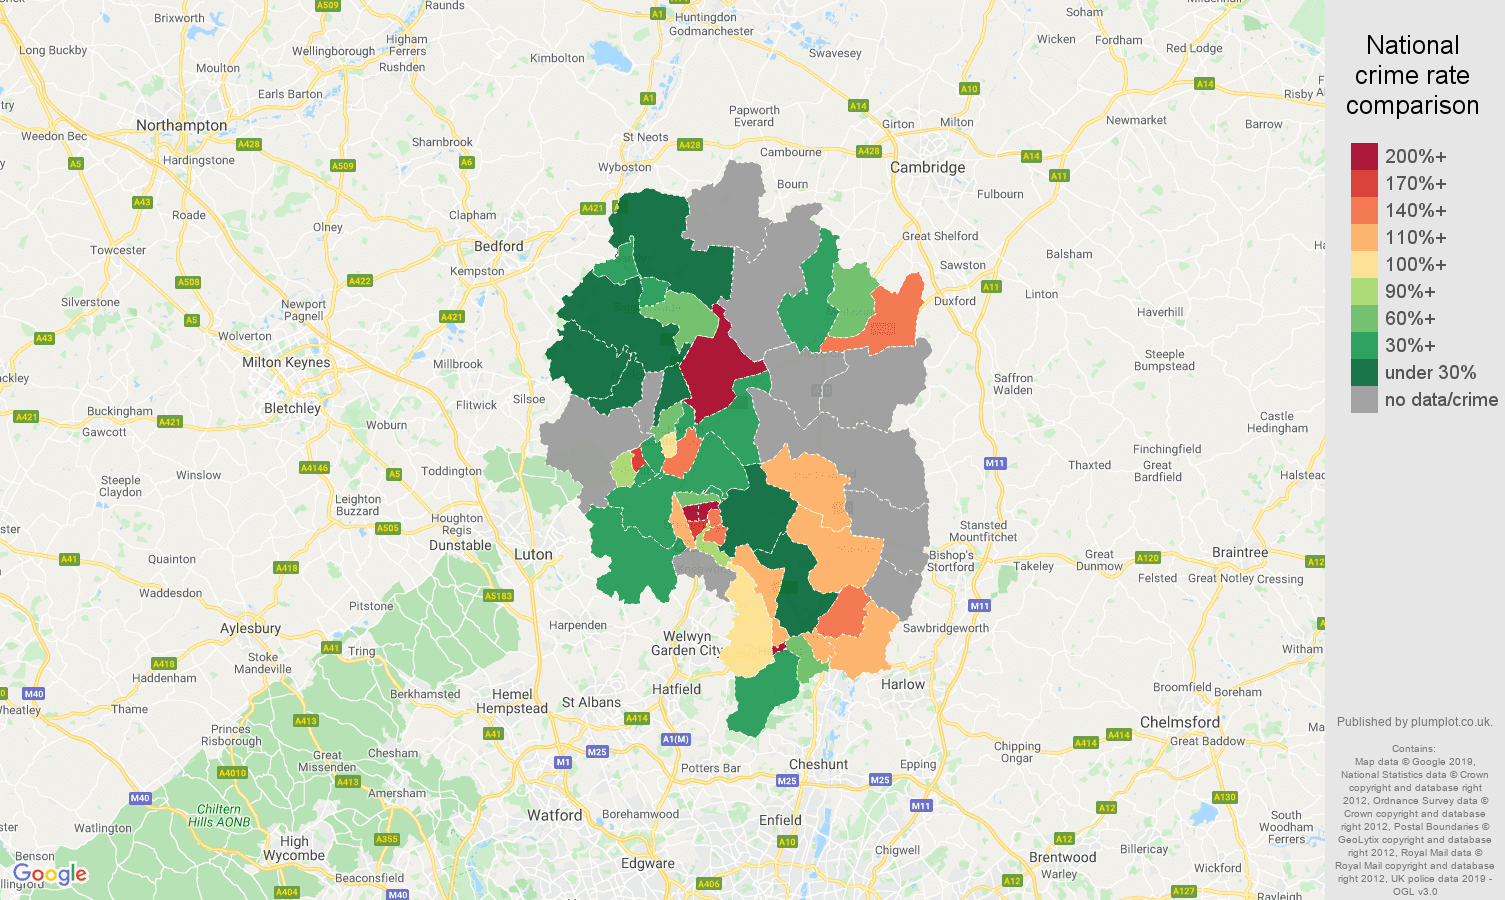 Stevenage possession of weapons crime rate comparison map